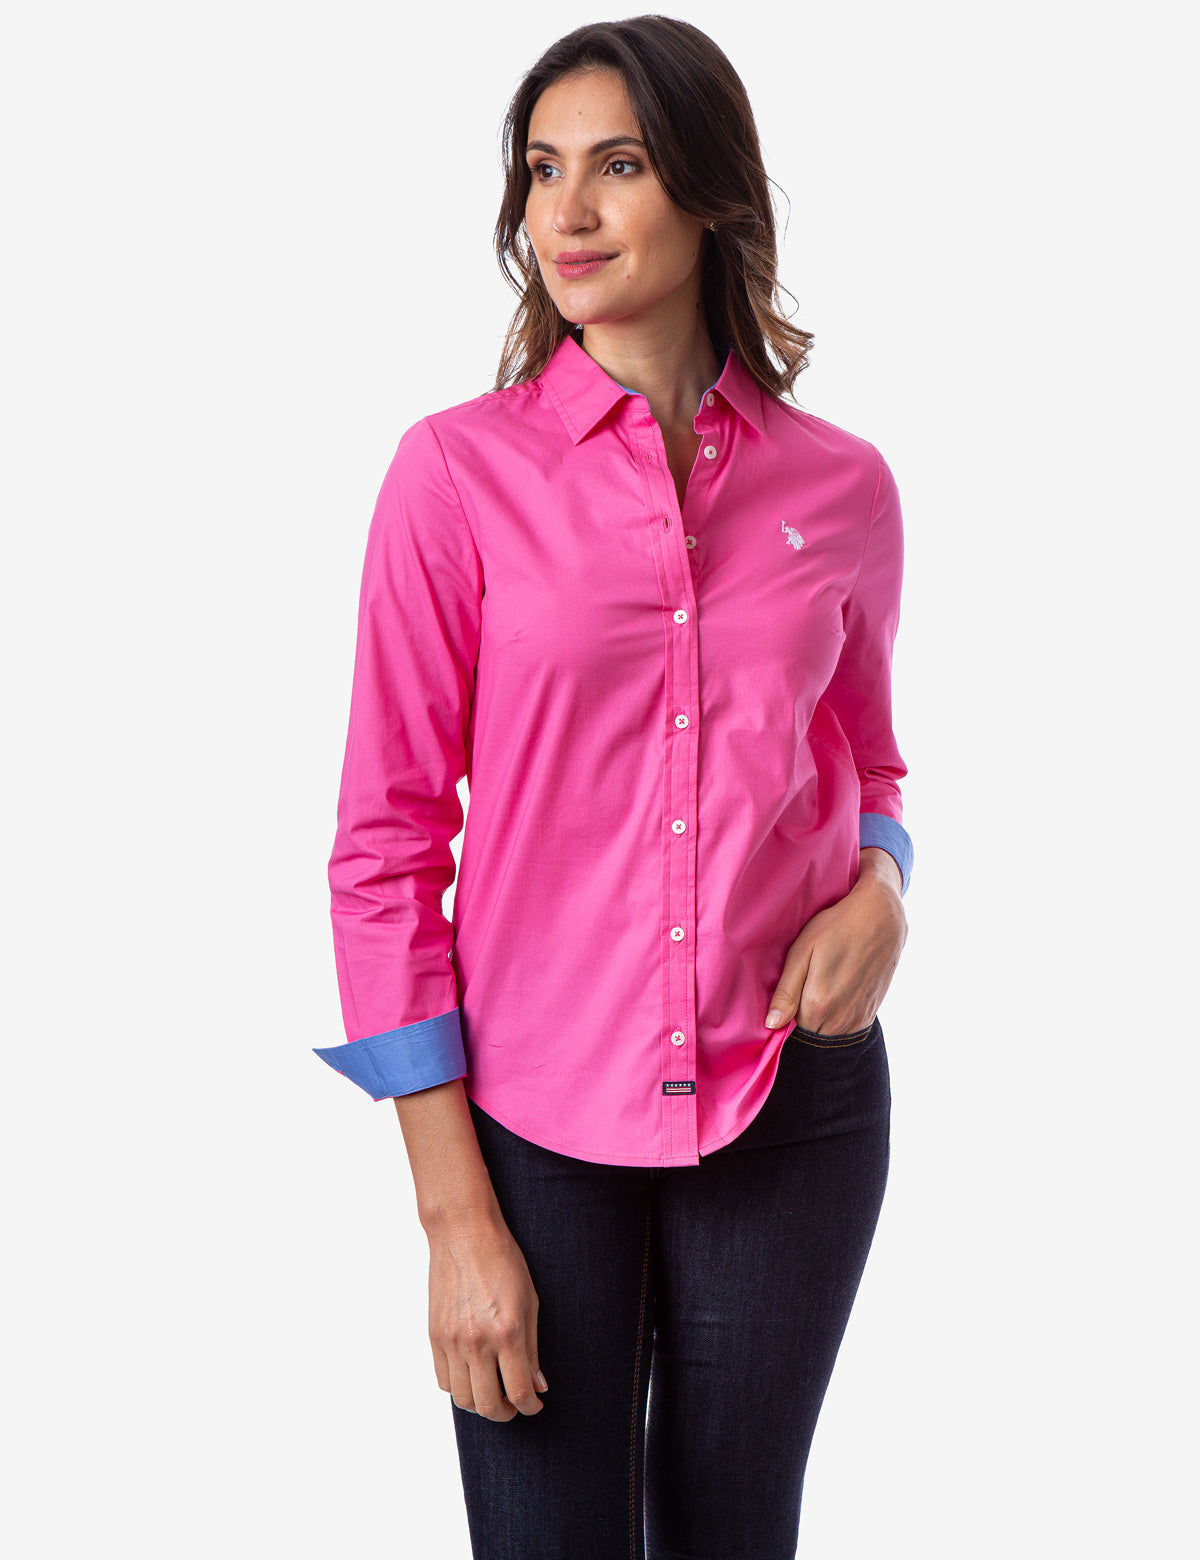 SOLID STRETCH POPLIN SHIRT - U.S. Polo Assn.